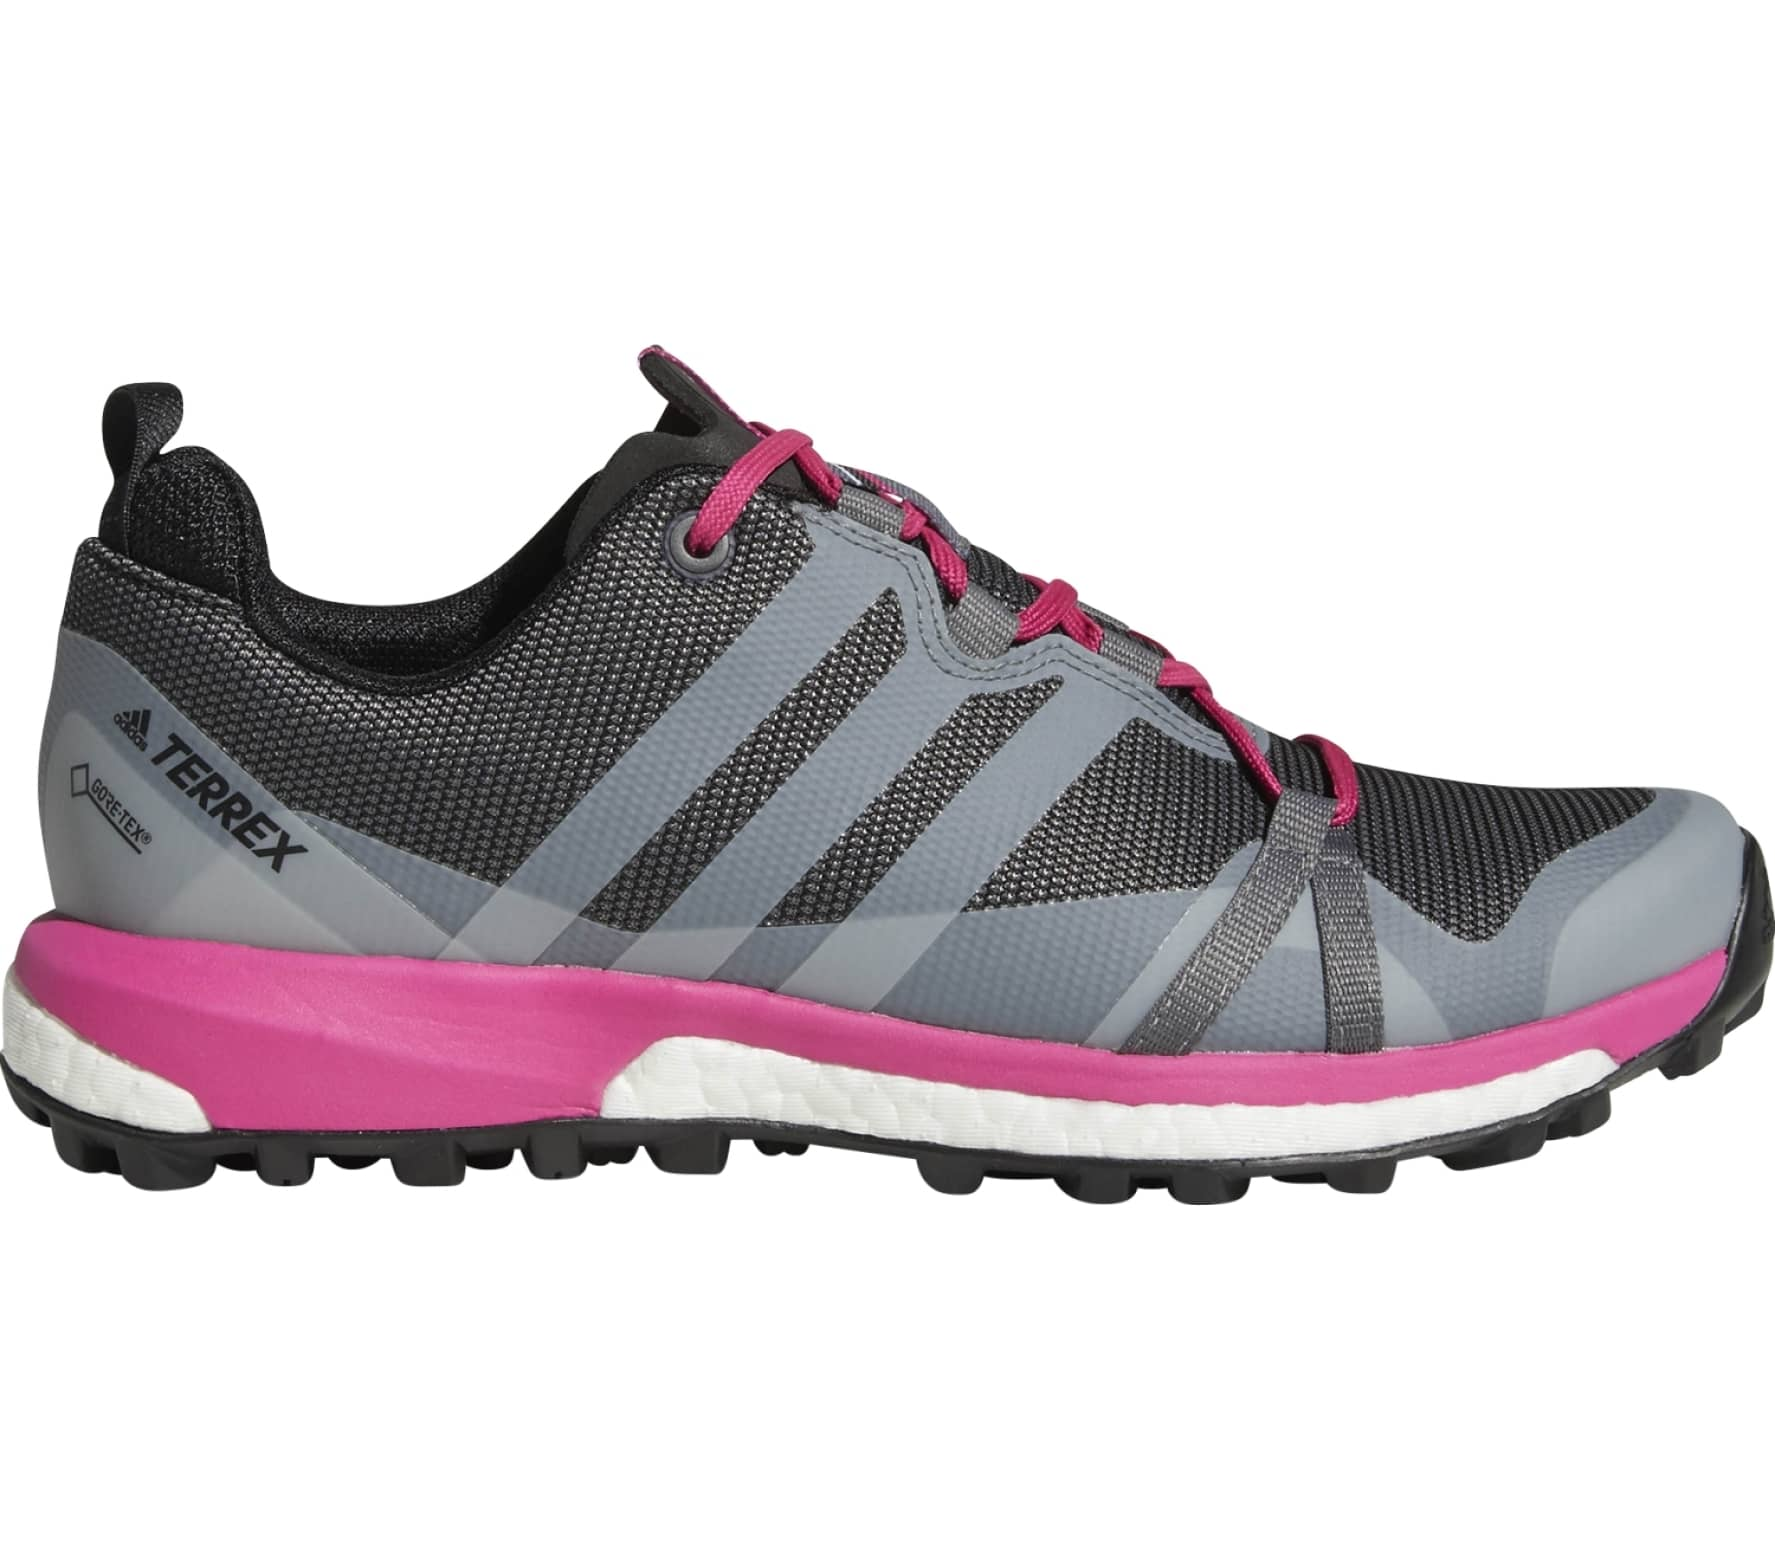 premium selection a163a 88b42 Adidas - Terrex Agravic GTX Women s hiking shoes (grey pink)